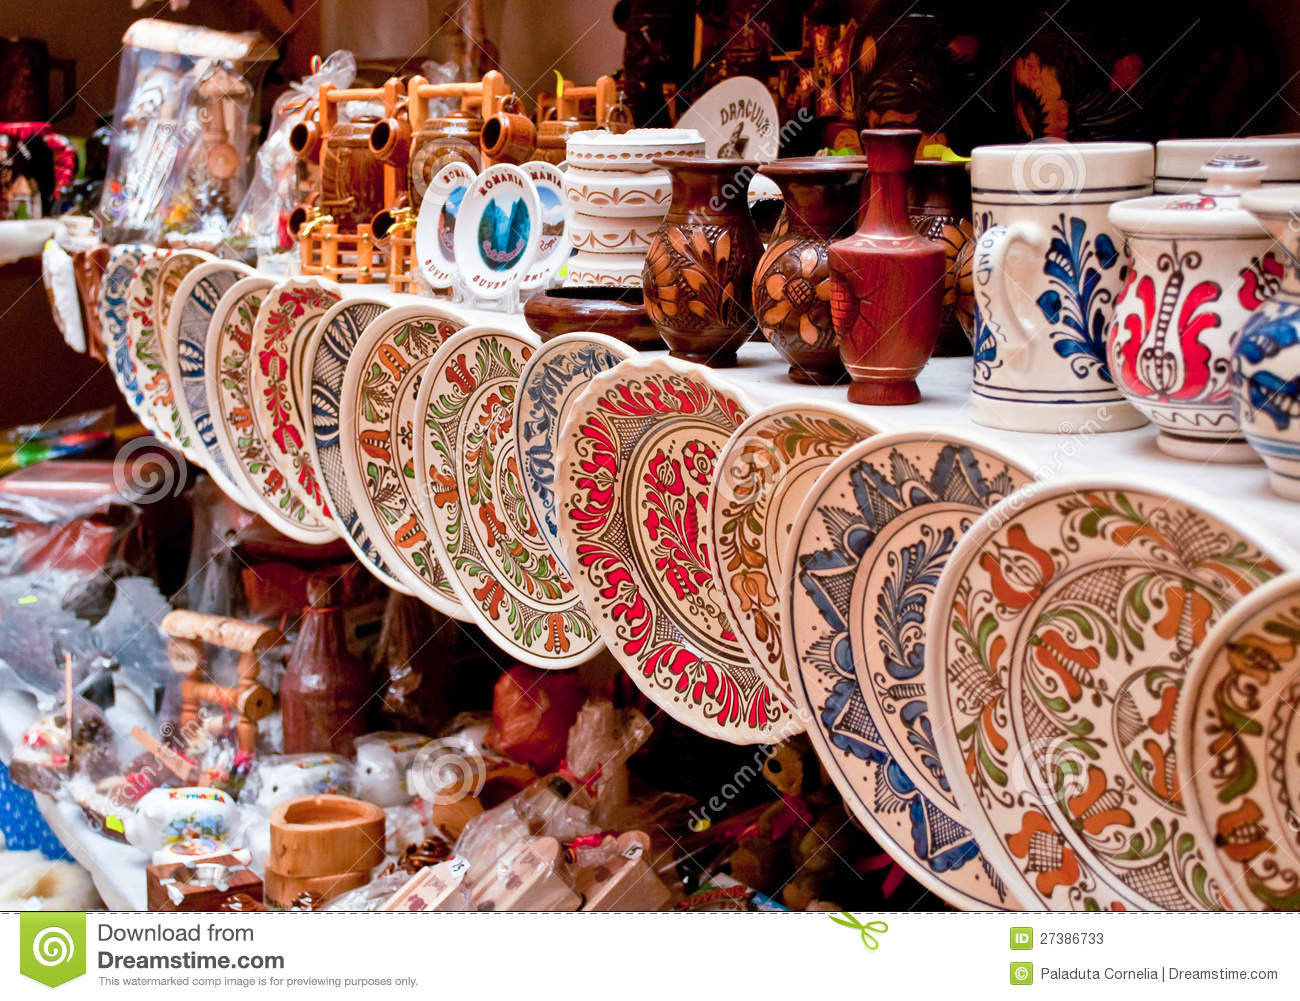 Castle For Sale Romania Ceramic Plates And Souvenirs Stock Image Image 27386733